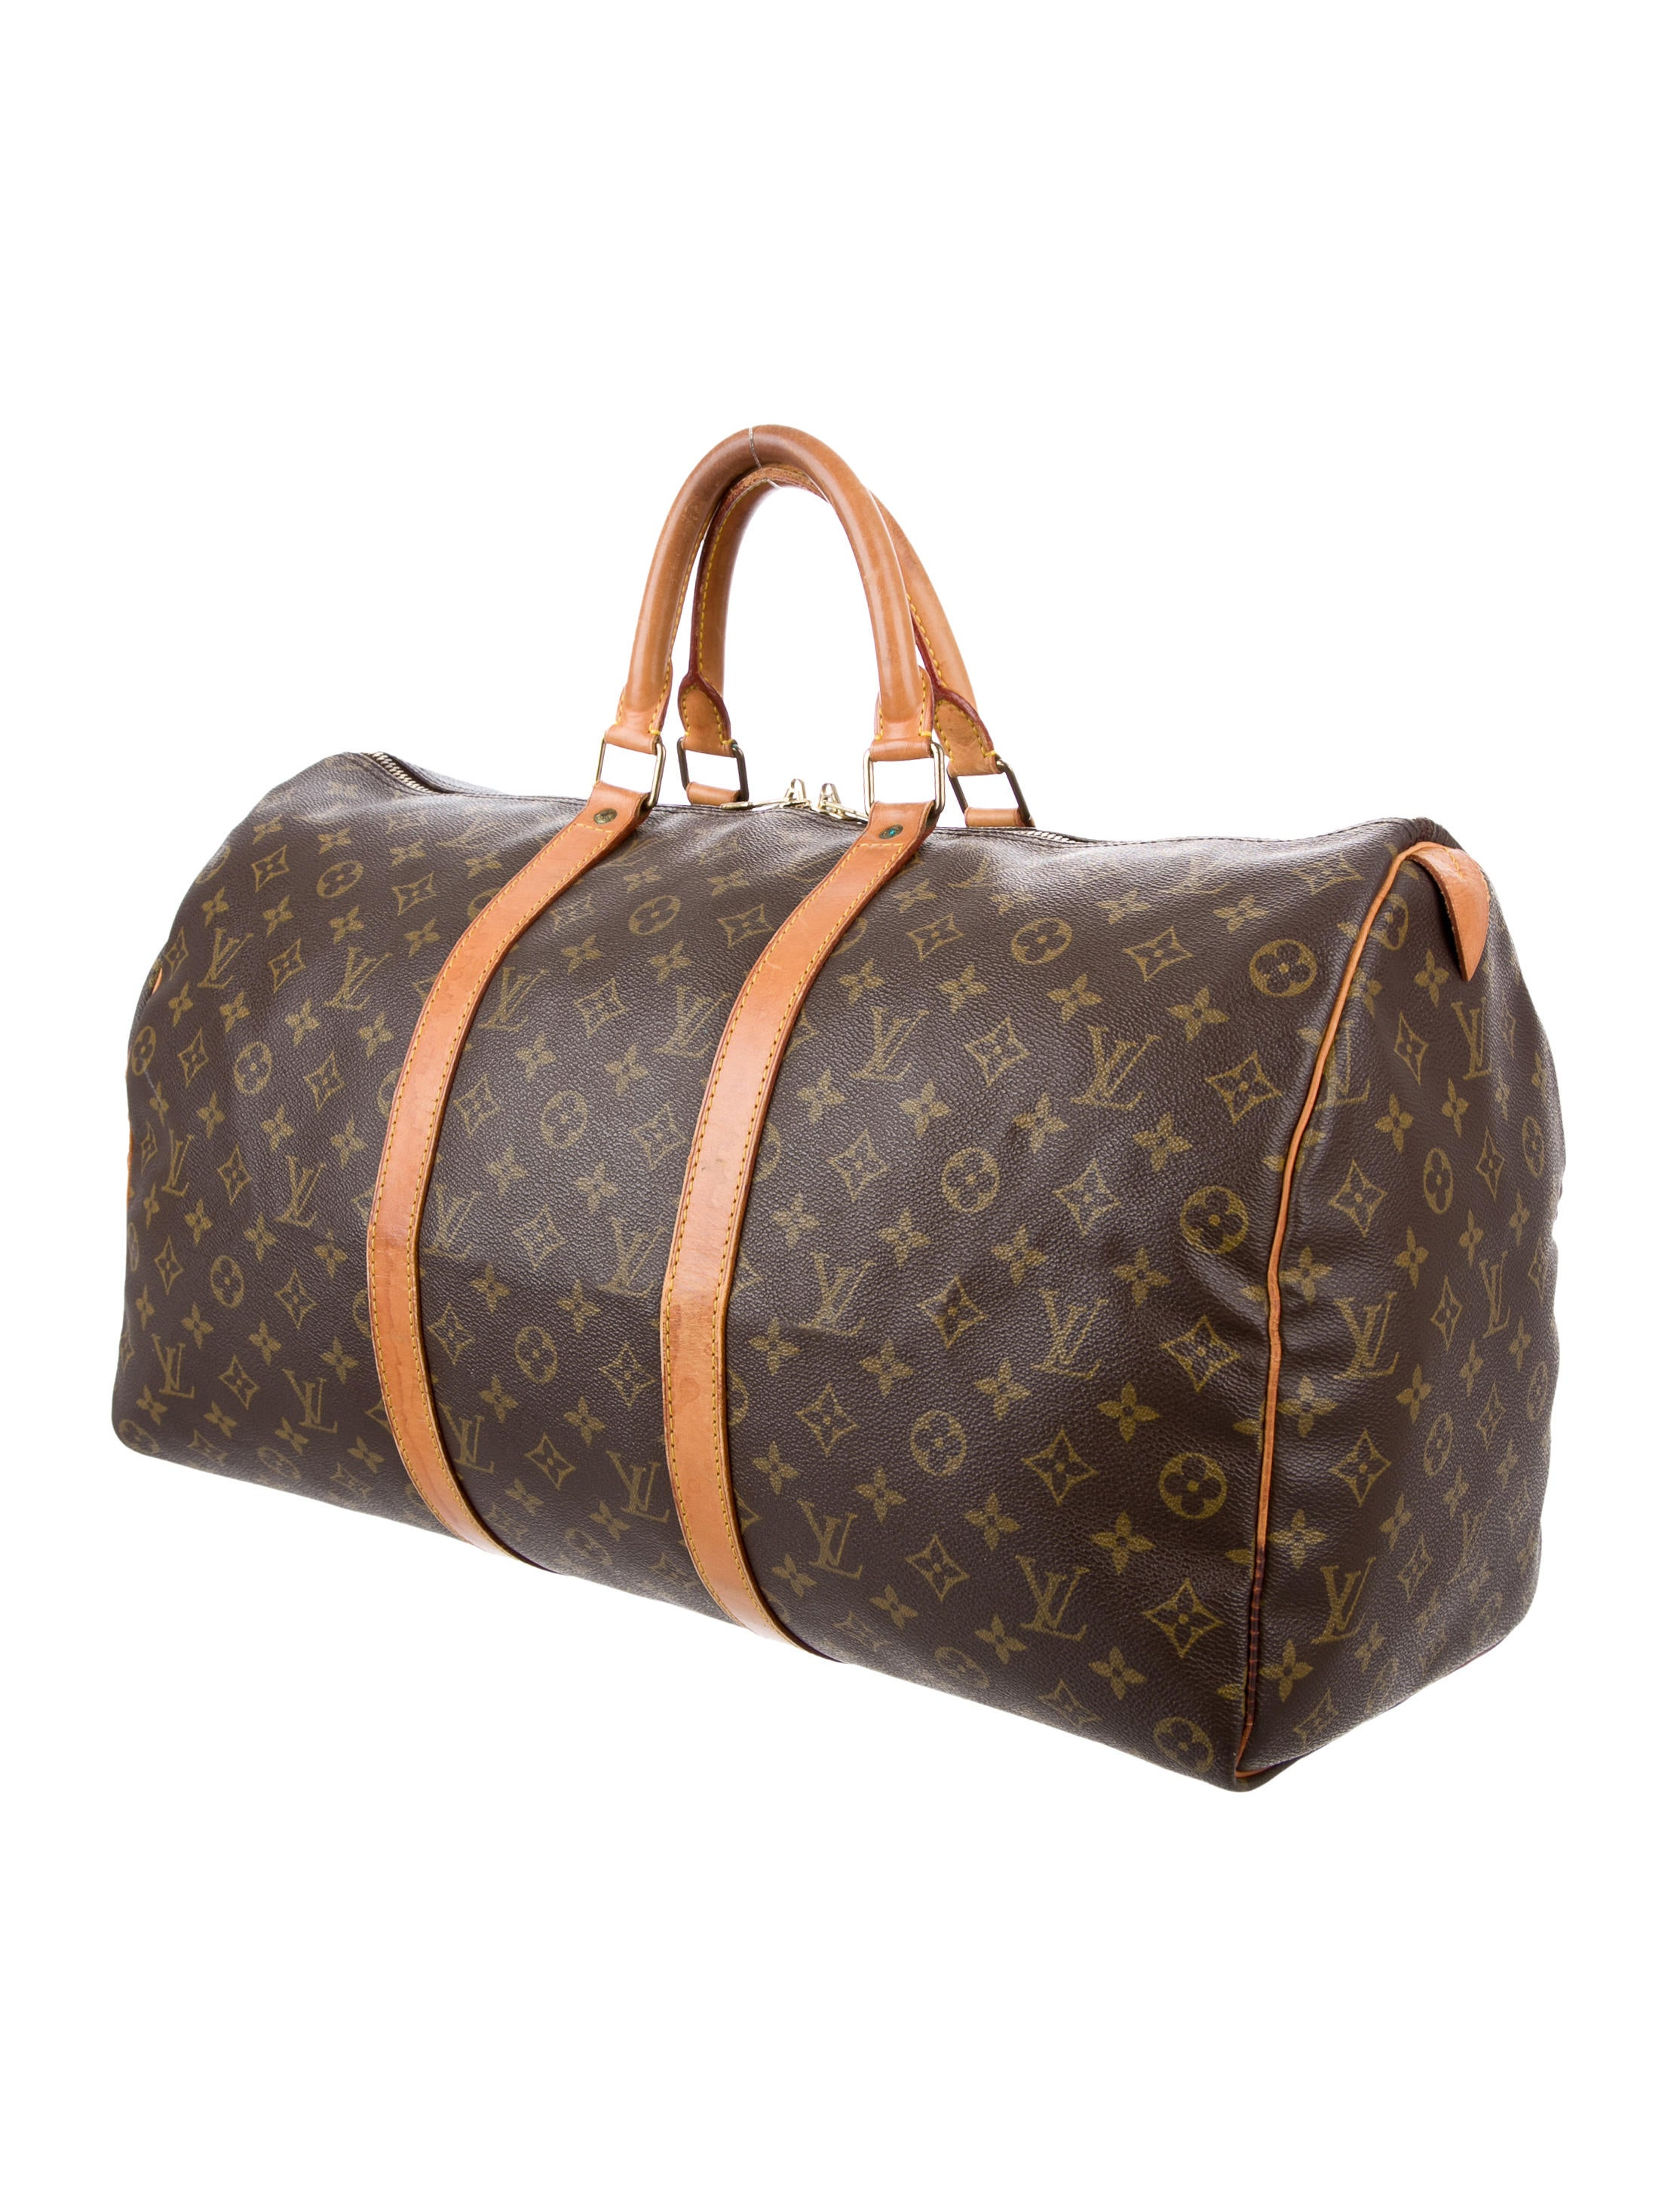 louis vuitton monogram keepall 50 handbags lou123832 the realreal. Black Bedroom Furniture Sets. Home Design Ideas